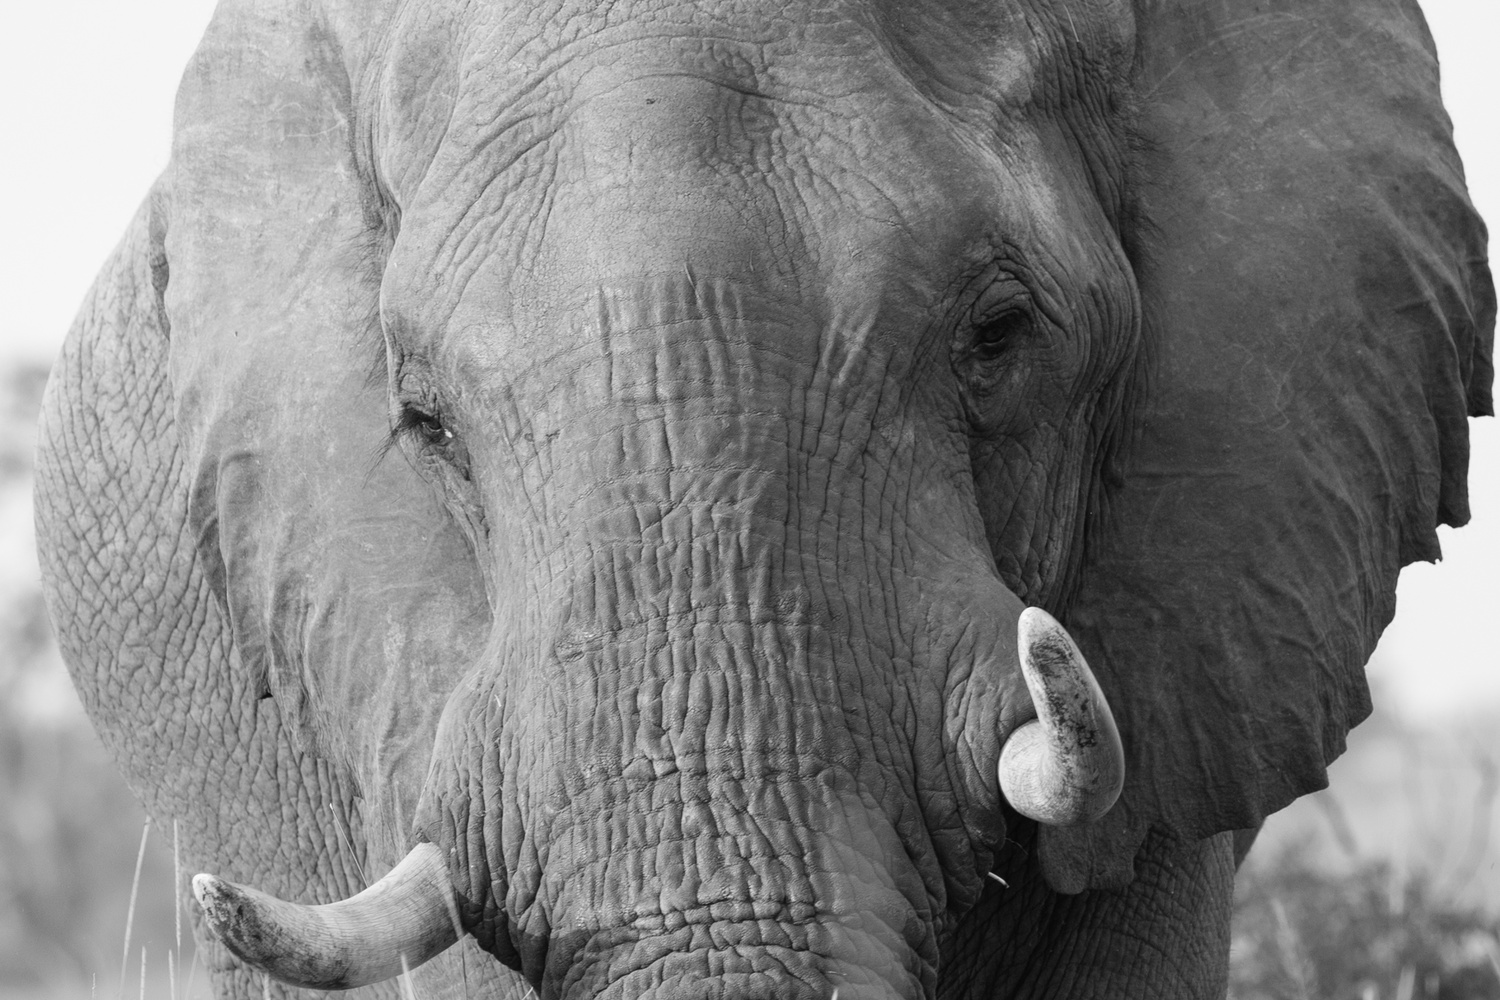 Eyes of the Elephant by Shawn Mahan